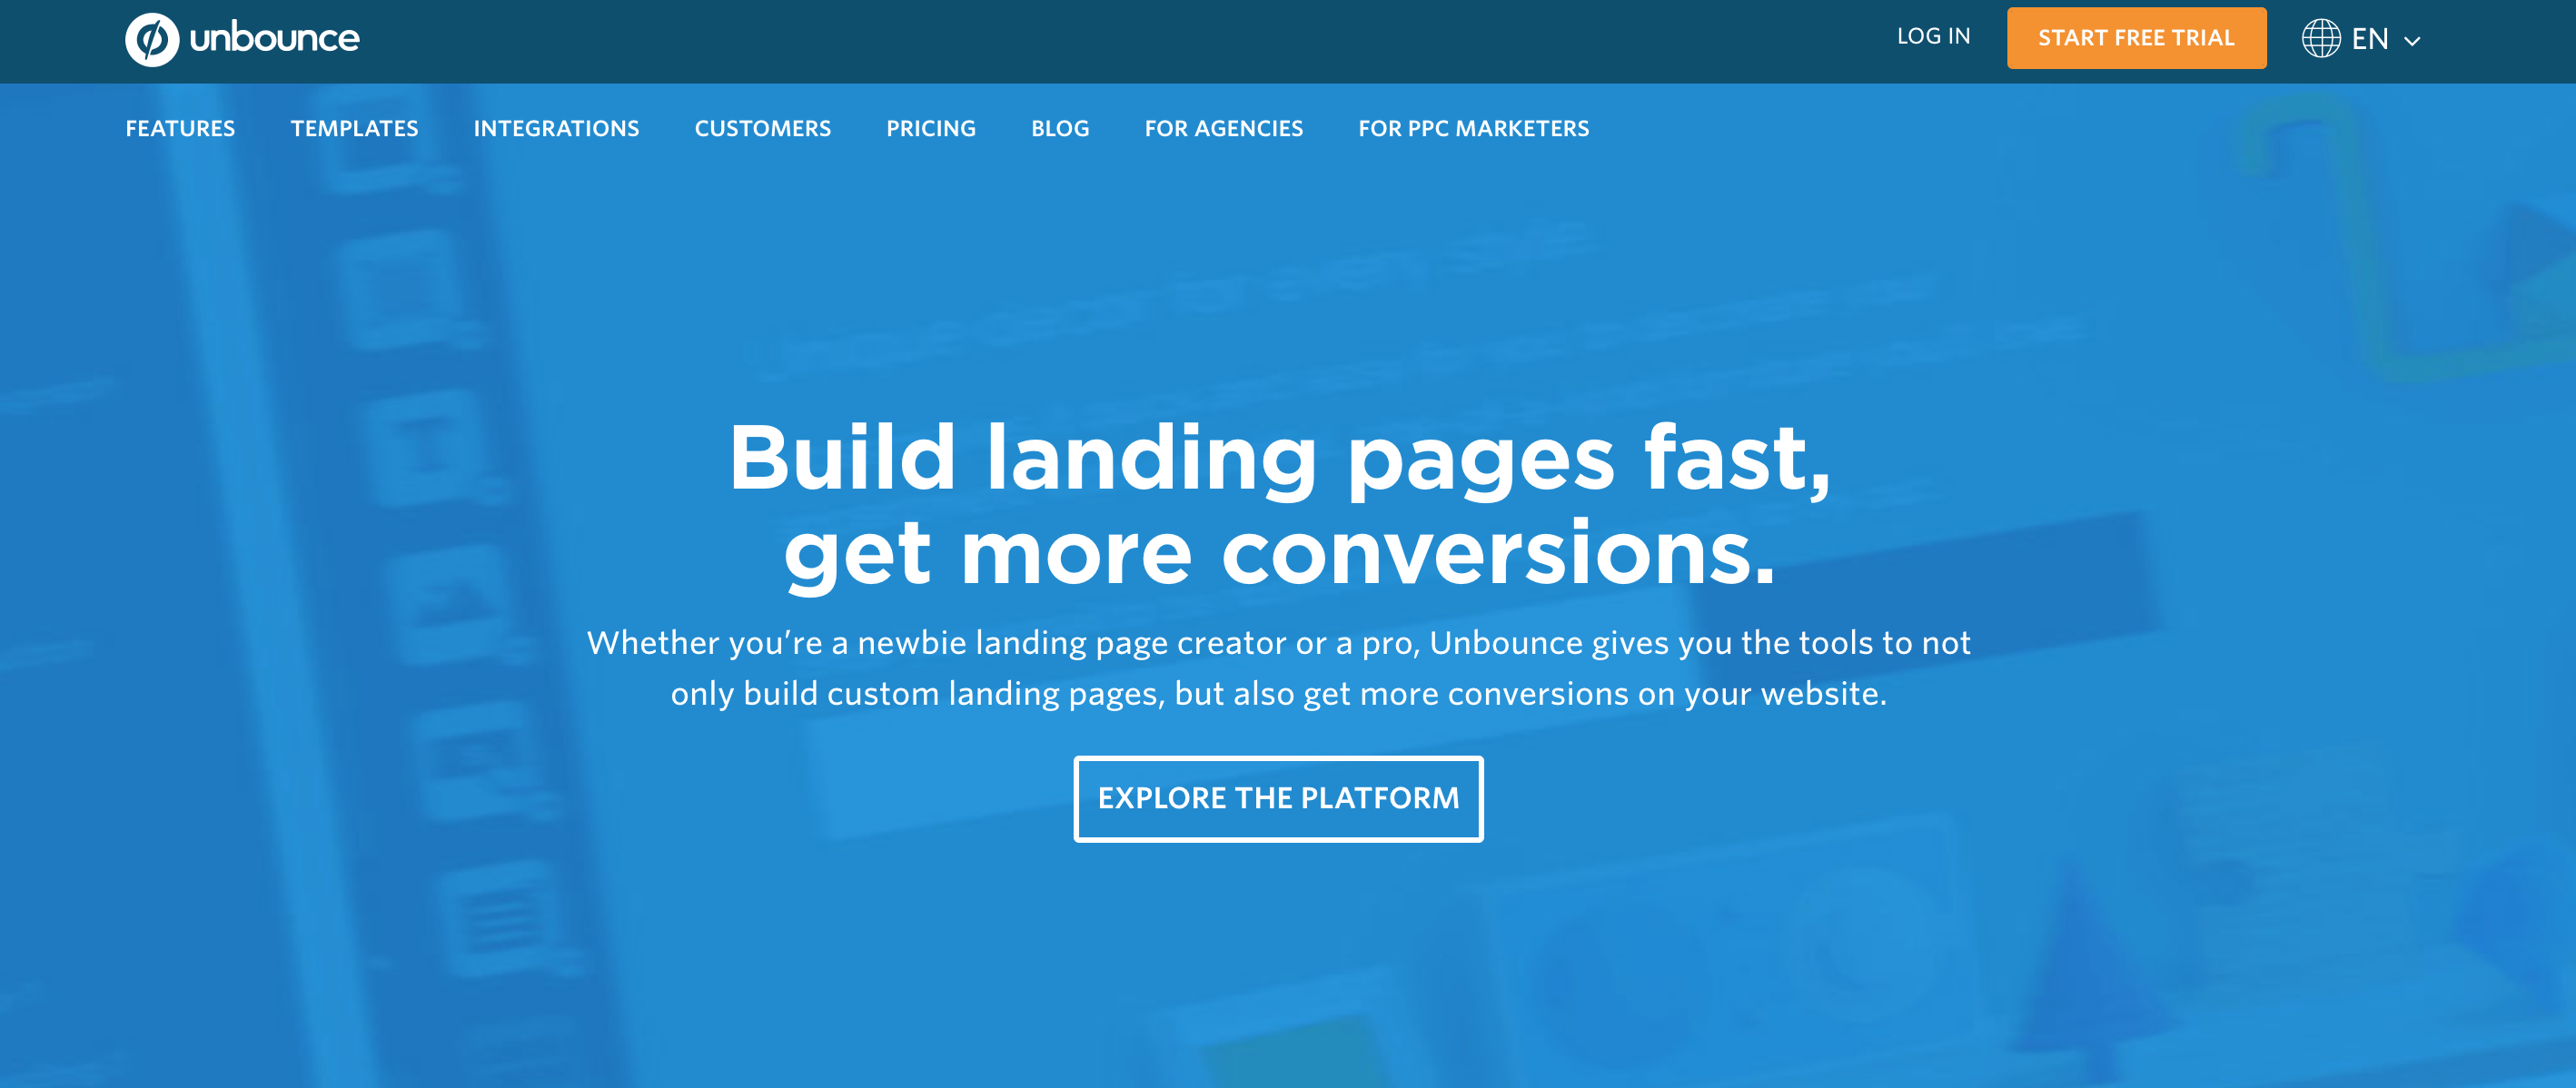 How to Write a Value Proposition that Grabs Attention - Unbounce UVP Example